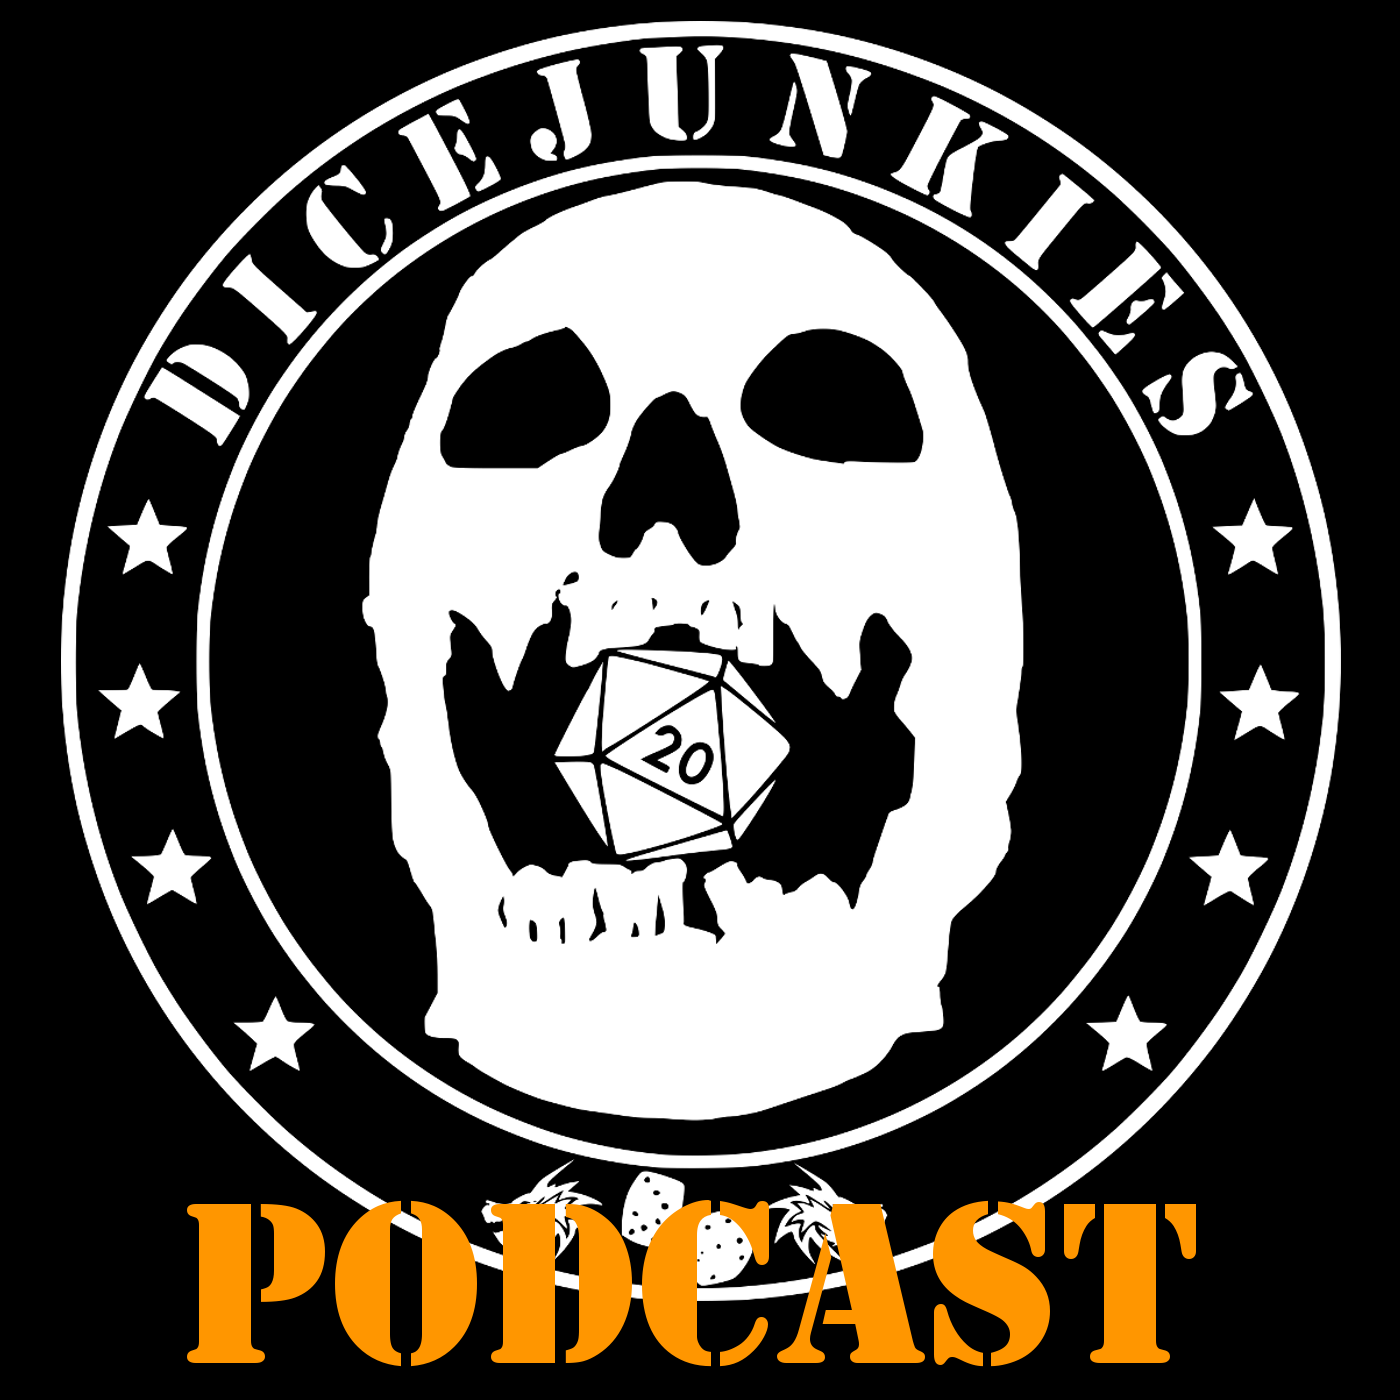 dicejunkies gaming ics movies tabletop and more by Star Wars Movies dicejunkies gaming ics movies tabletop and more by dicejunkies on apple podcasts